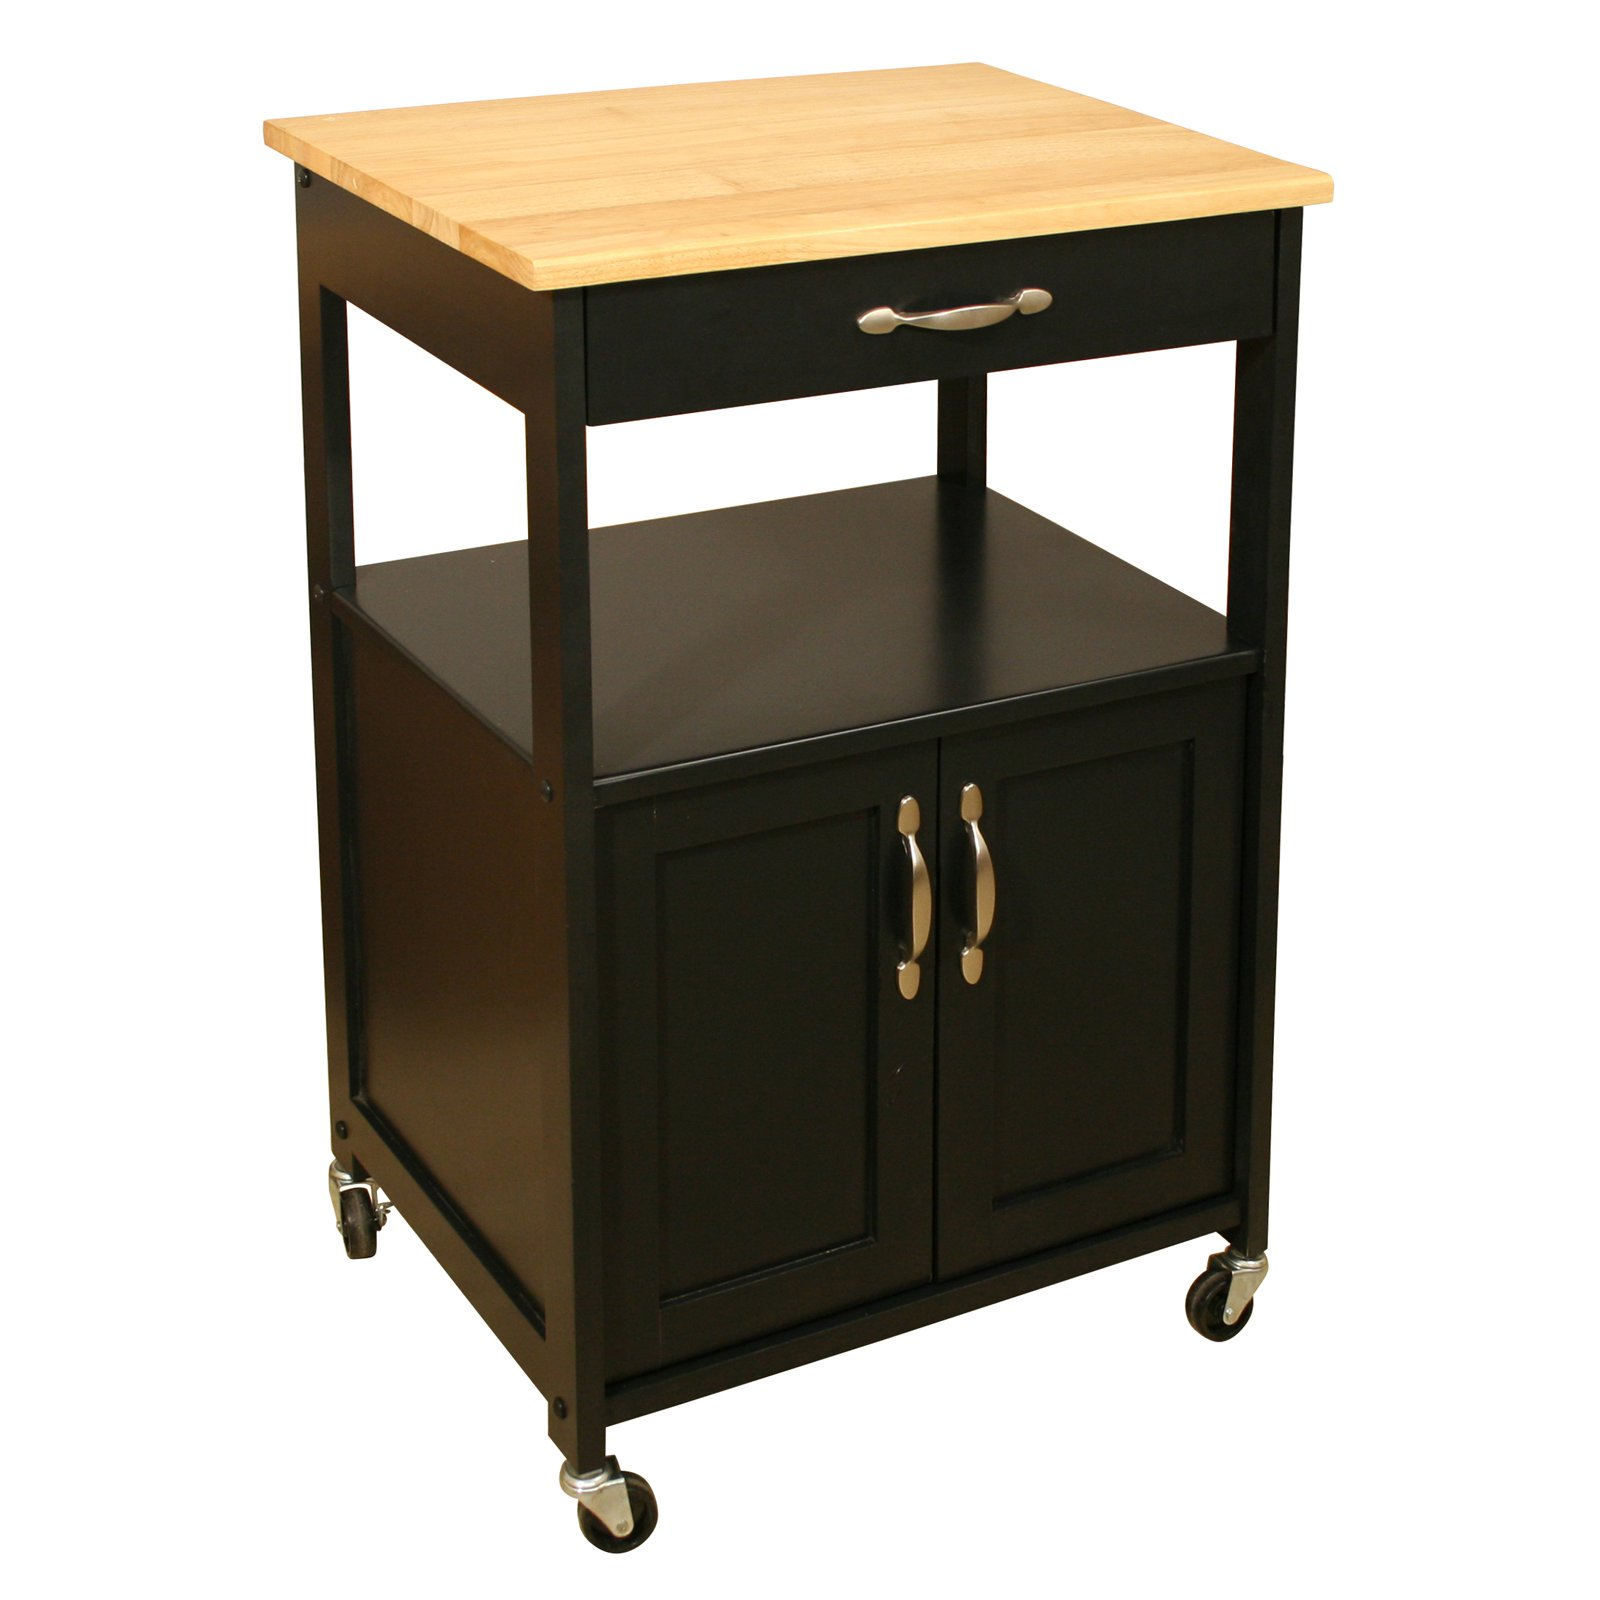 Granite Top Kitchen Trolley Black Kitchen Island Cart Black Kitchen Cart With Trash Bin Best